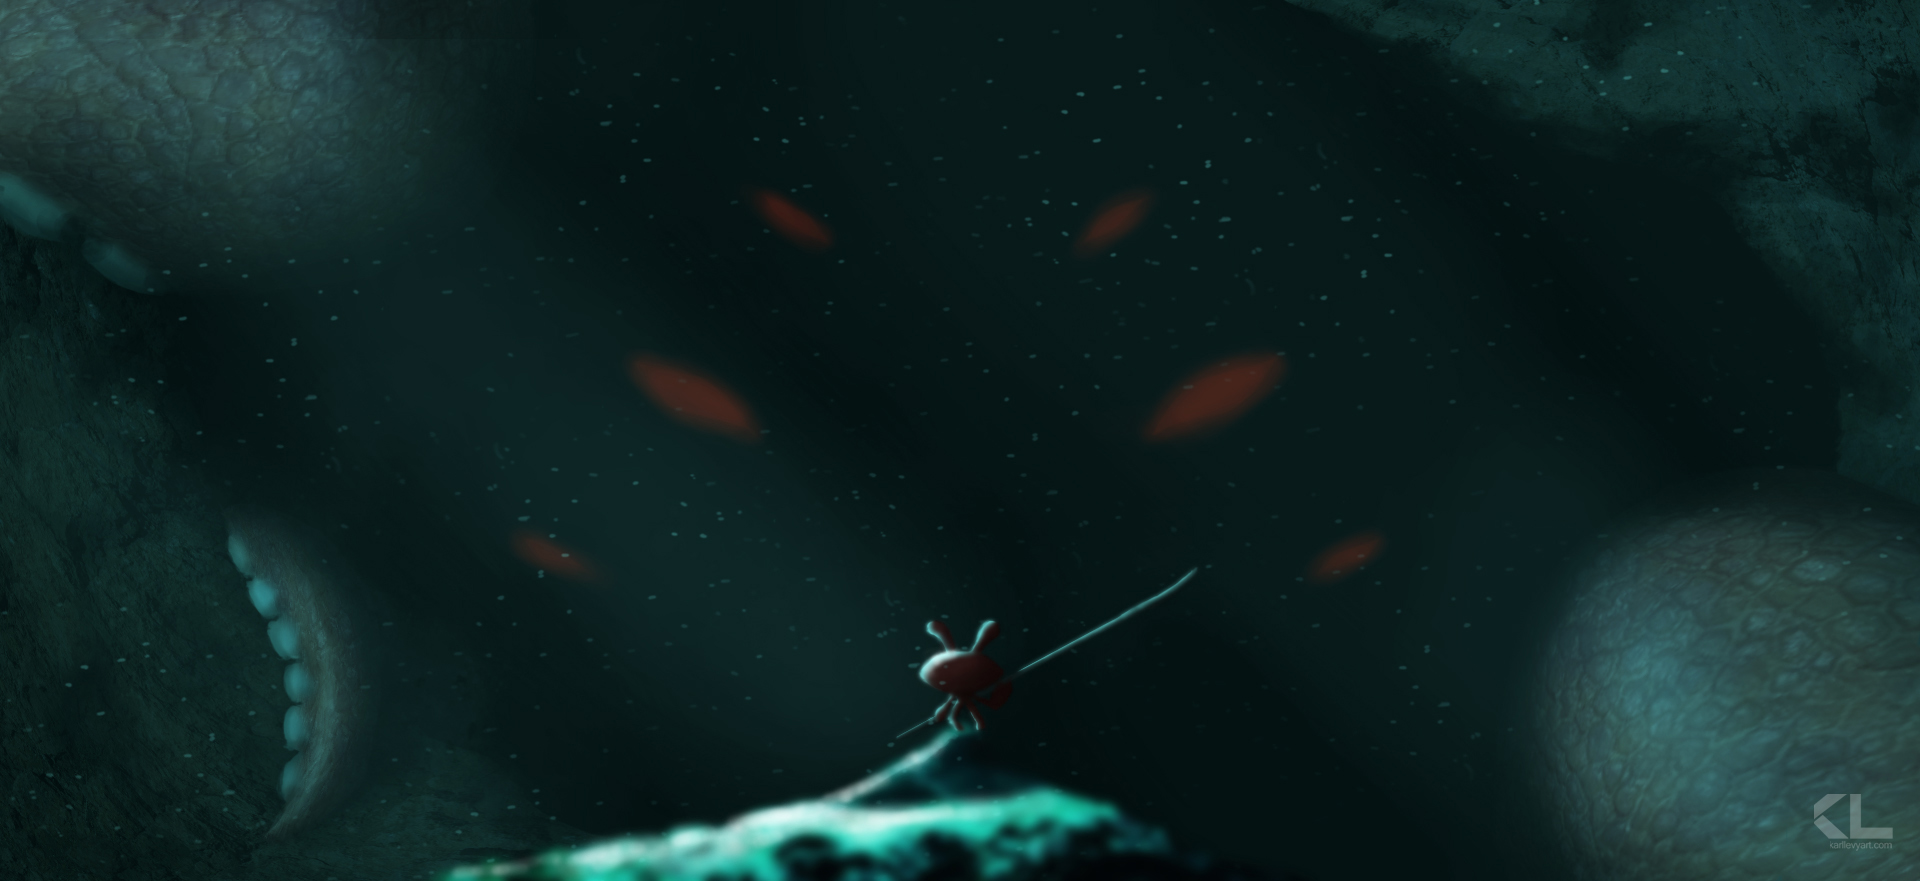 Keyframe 3 - Come Out!